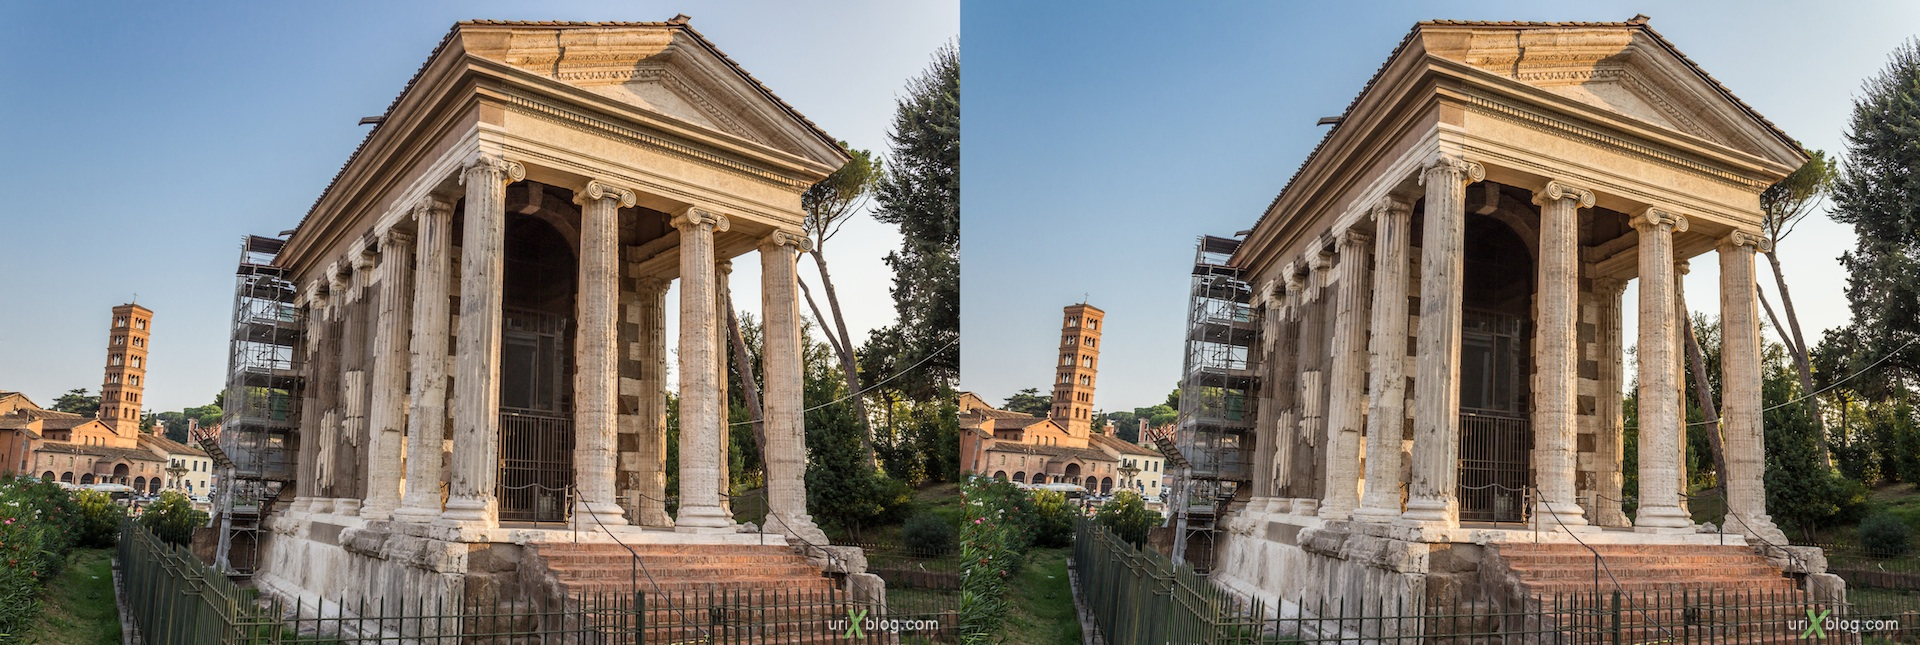 2012, Temple of Portunus, Forum Boarium, 3D, stereo pair, cross-eyed, crossview, cross view stereo pair